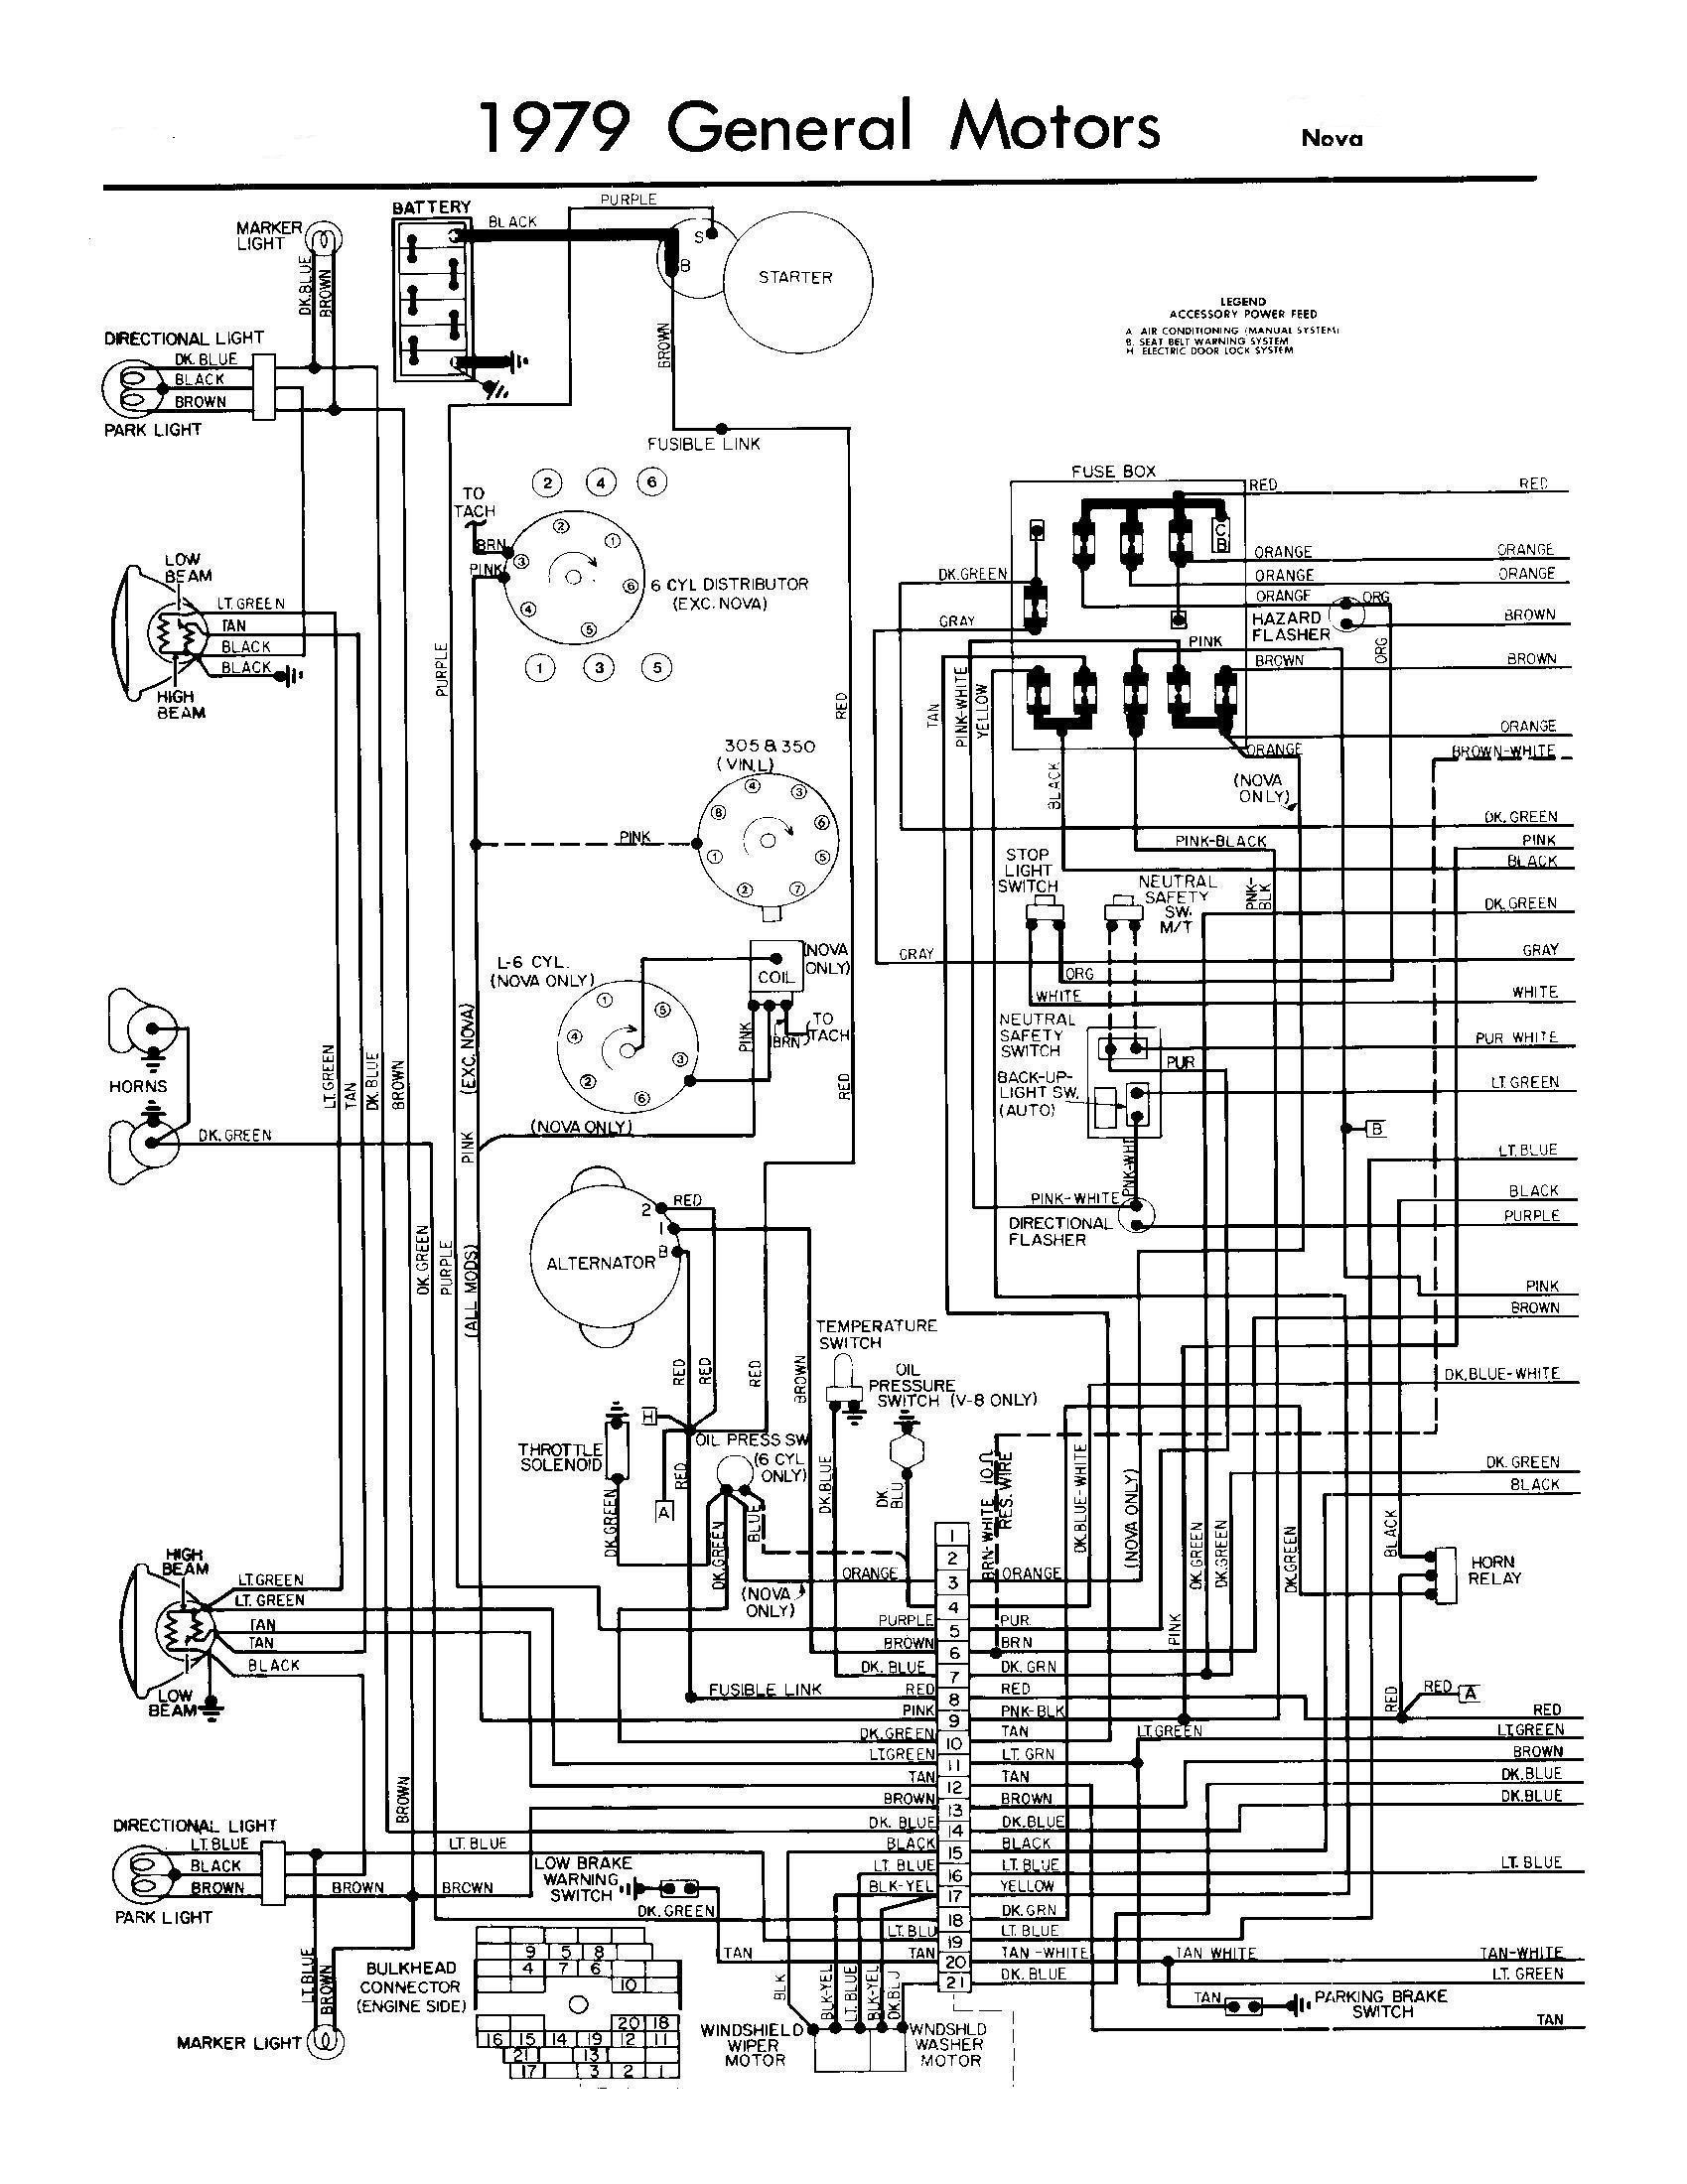 1993 Honda Civic Wiring Diagram from detoxicrecenze.com